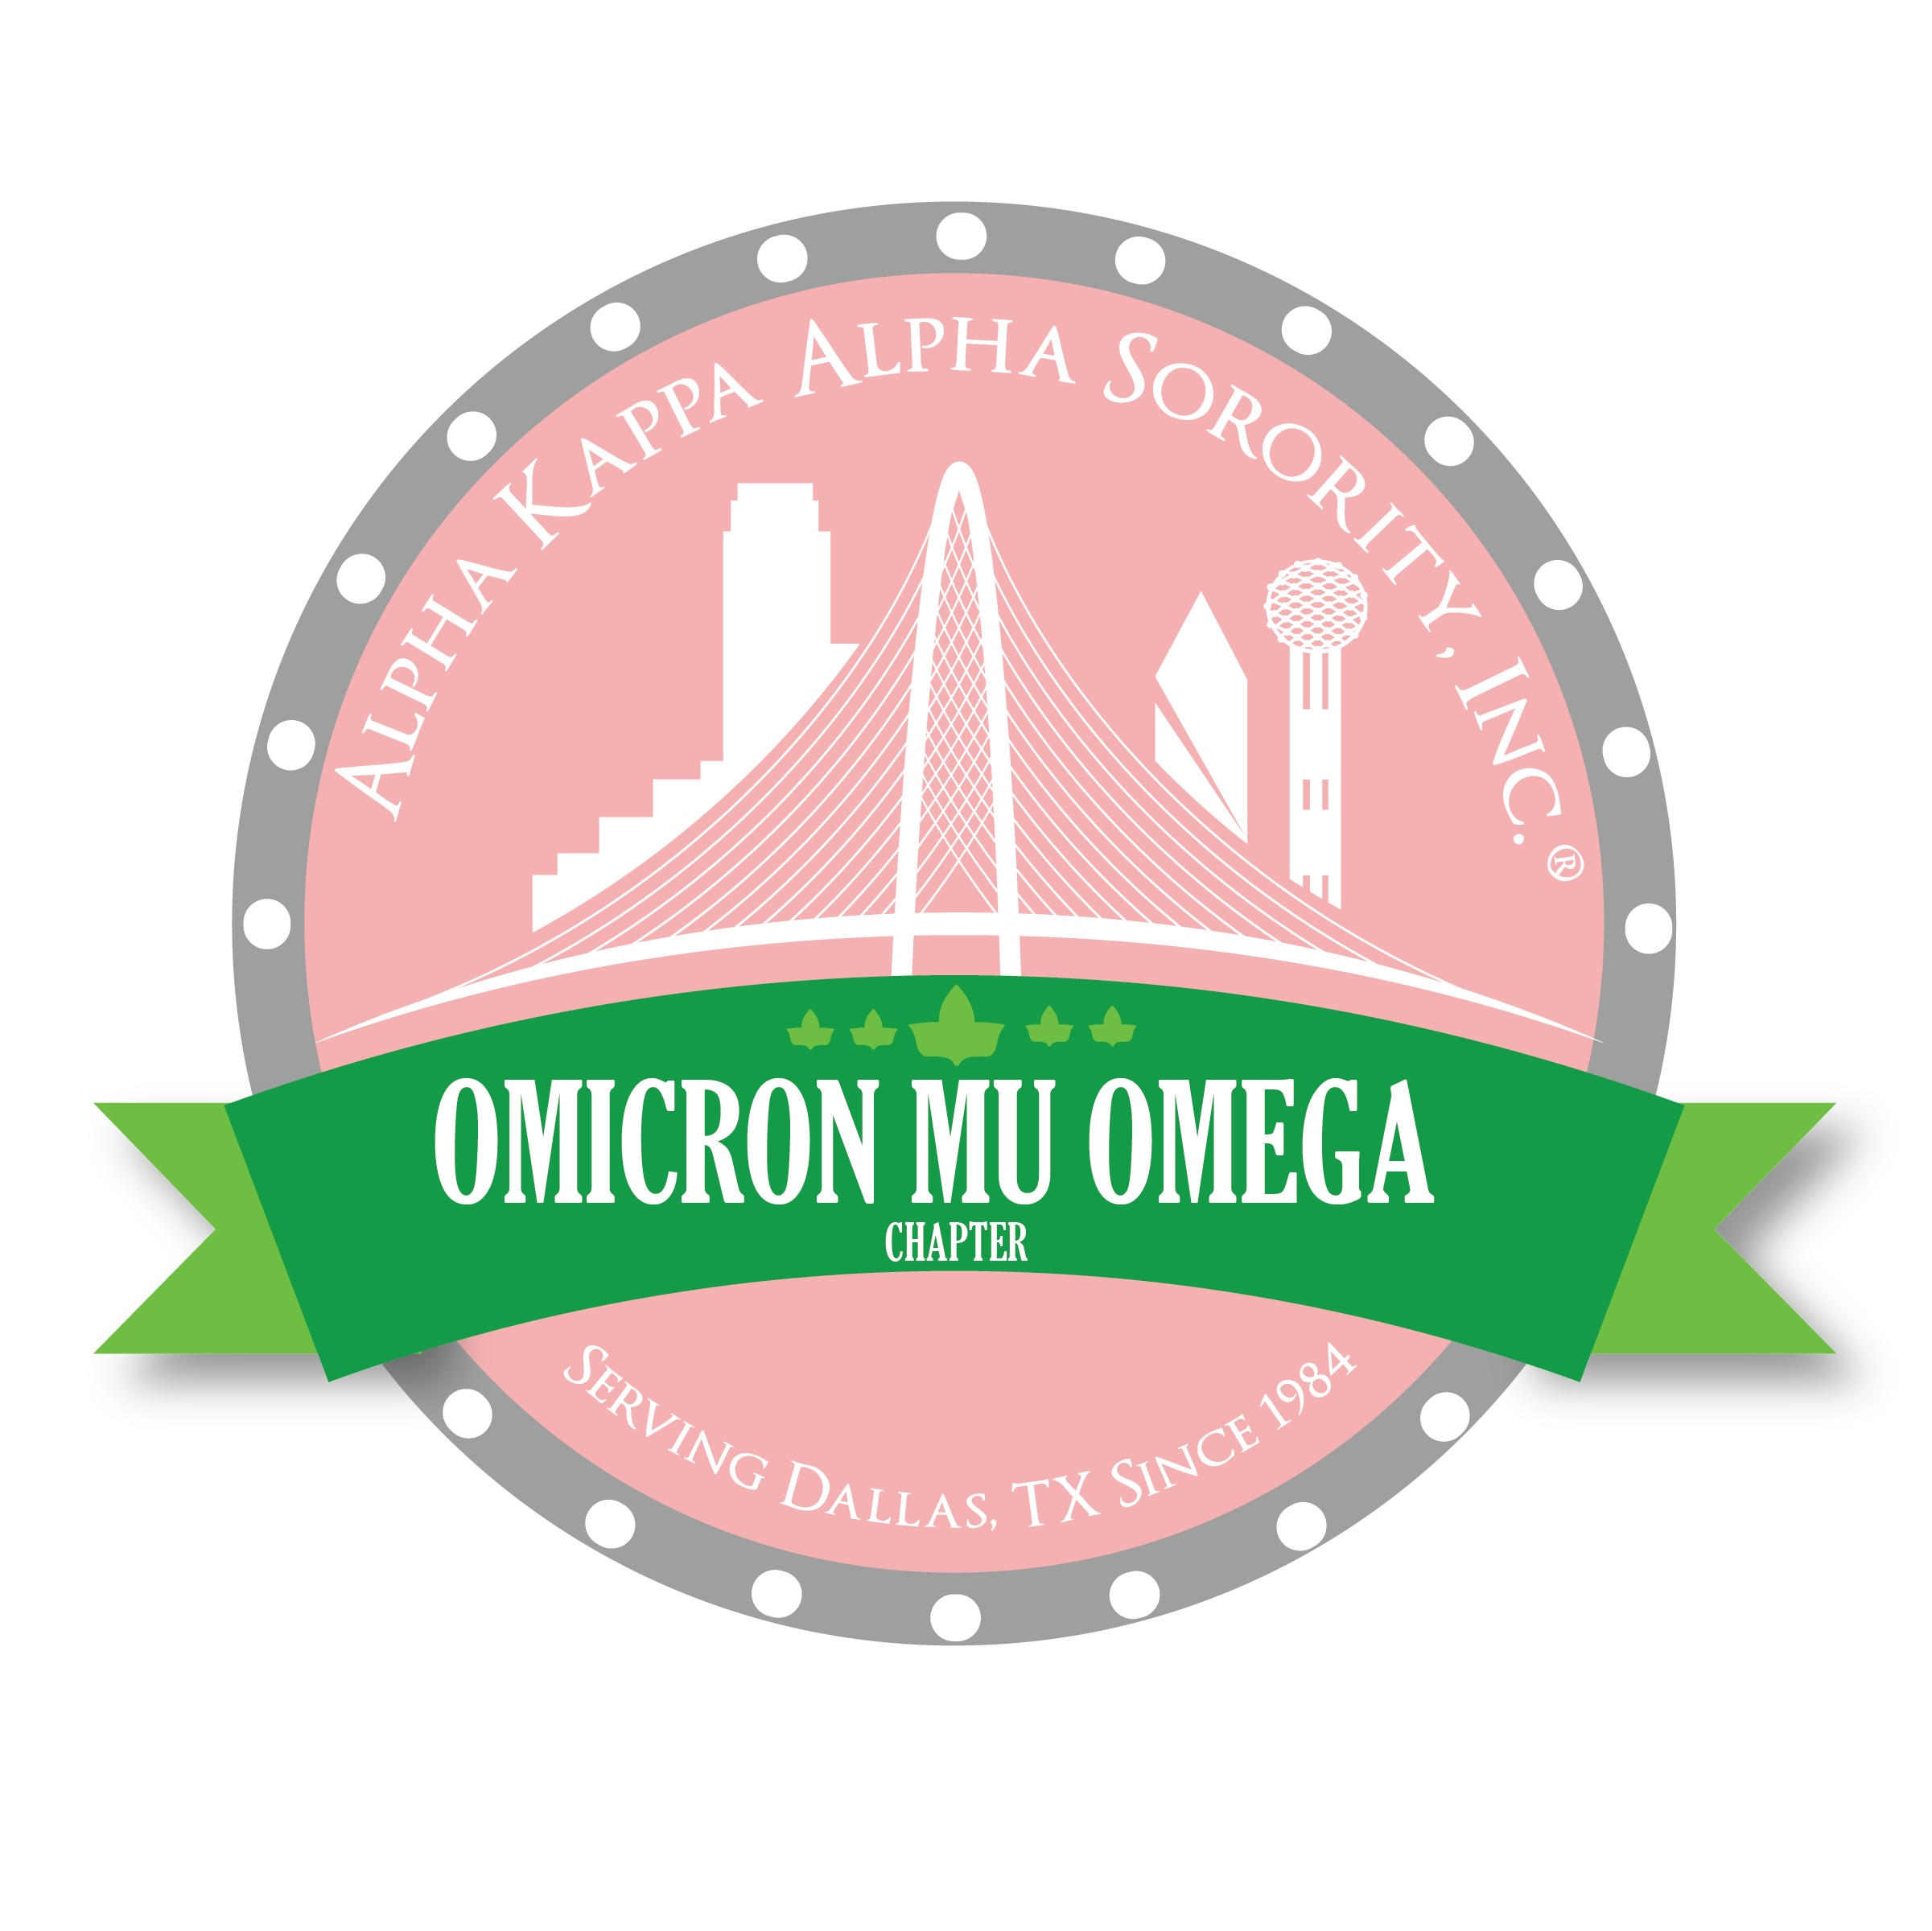 AKA_OMO_LOGO_2_updated-02.png